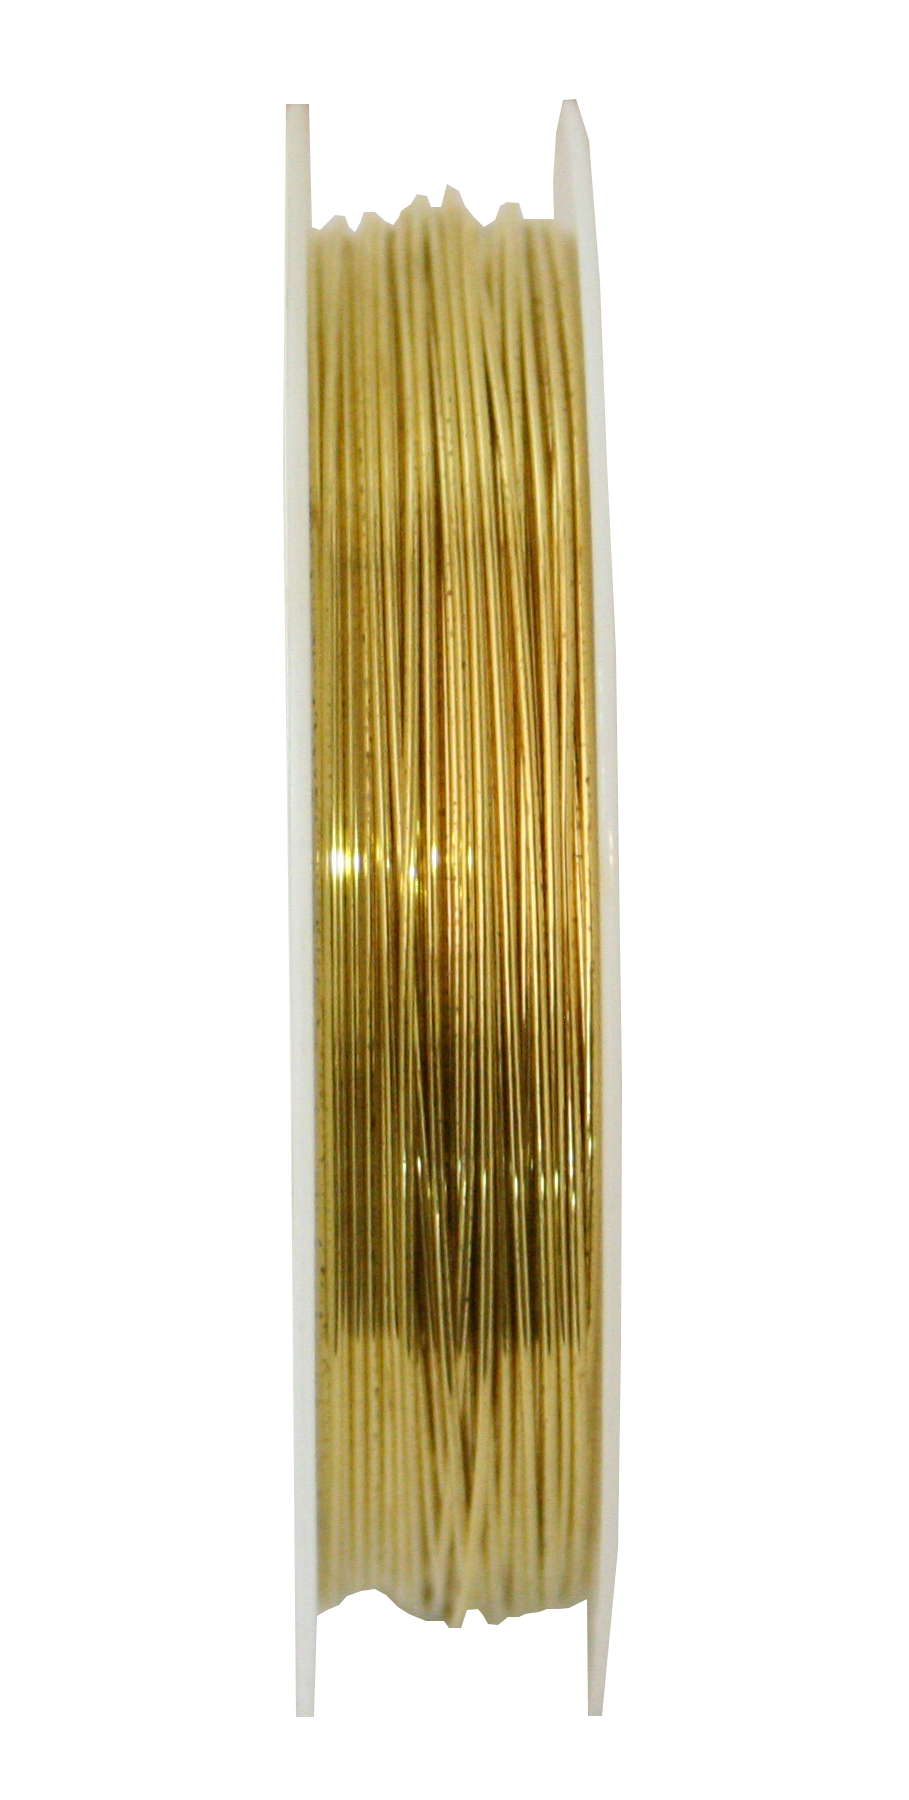 Beading wire, gold, 0.7mm, 8m